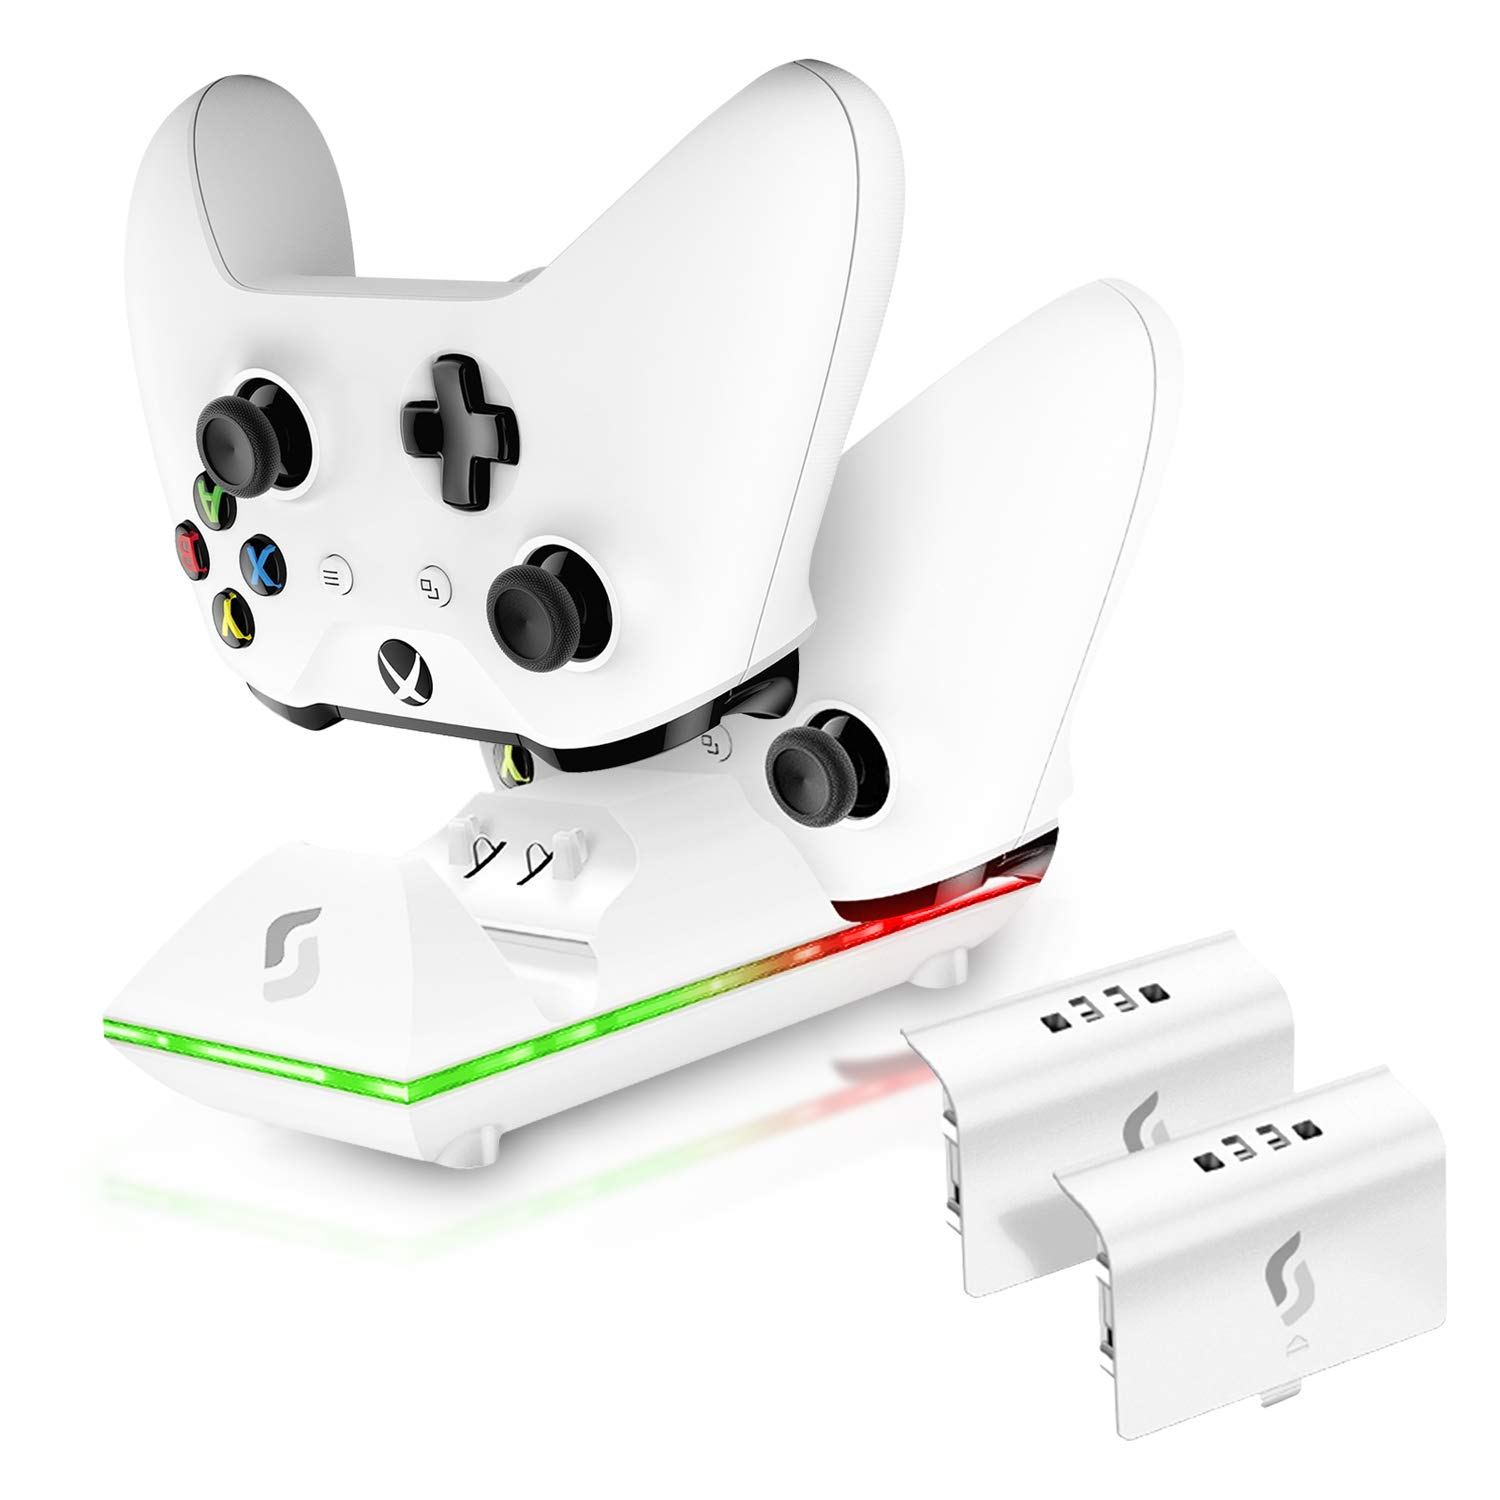 Sliq Xbox One/One X/One S Controller Charger Station and Battery Pack - Fits Two Wireless Game Pads, Includes 2 Rechargeable Batteries - Also Compatible with Elite and PC Versions (White)